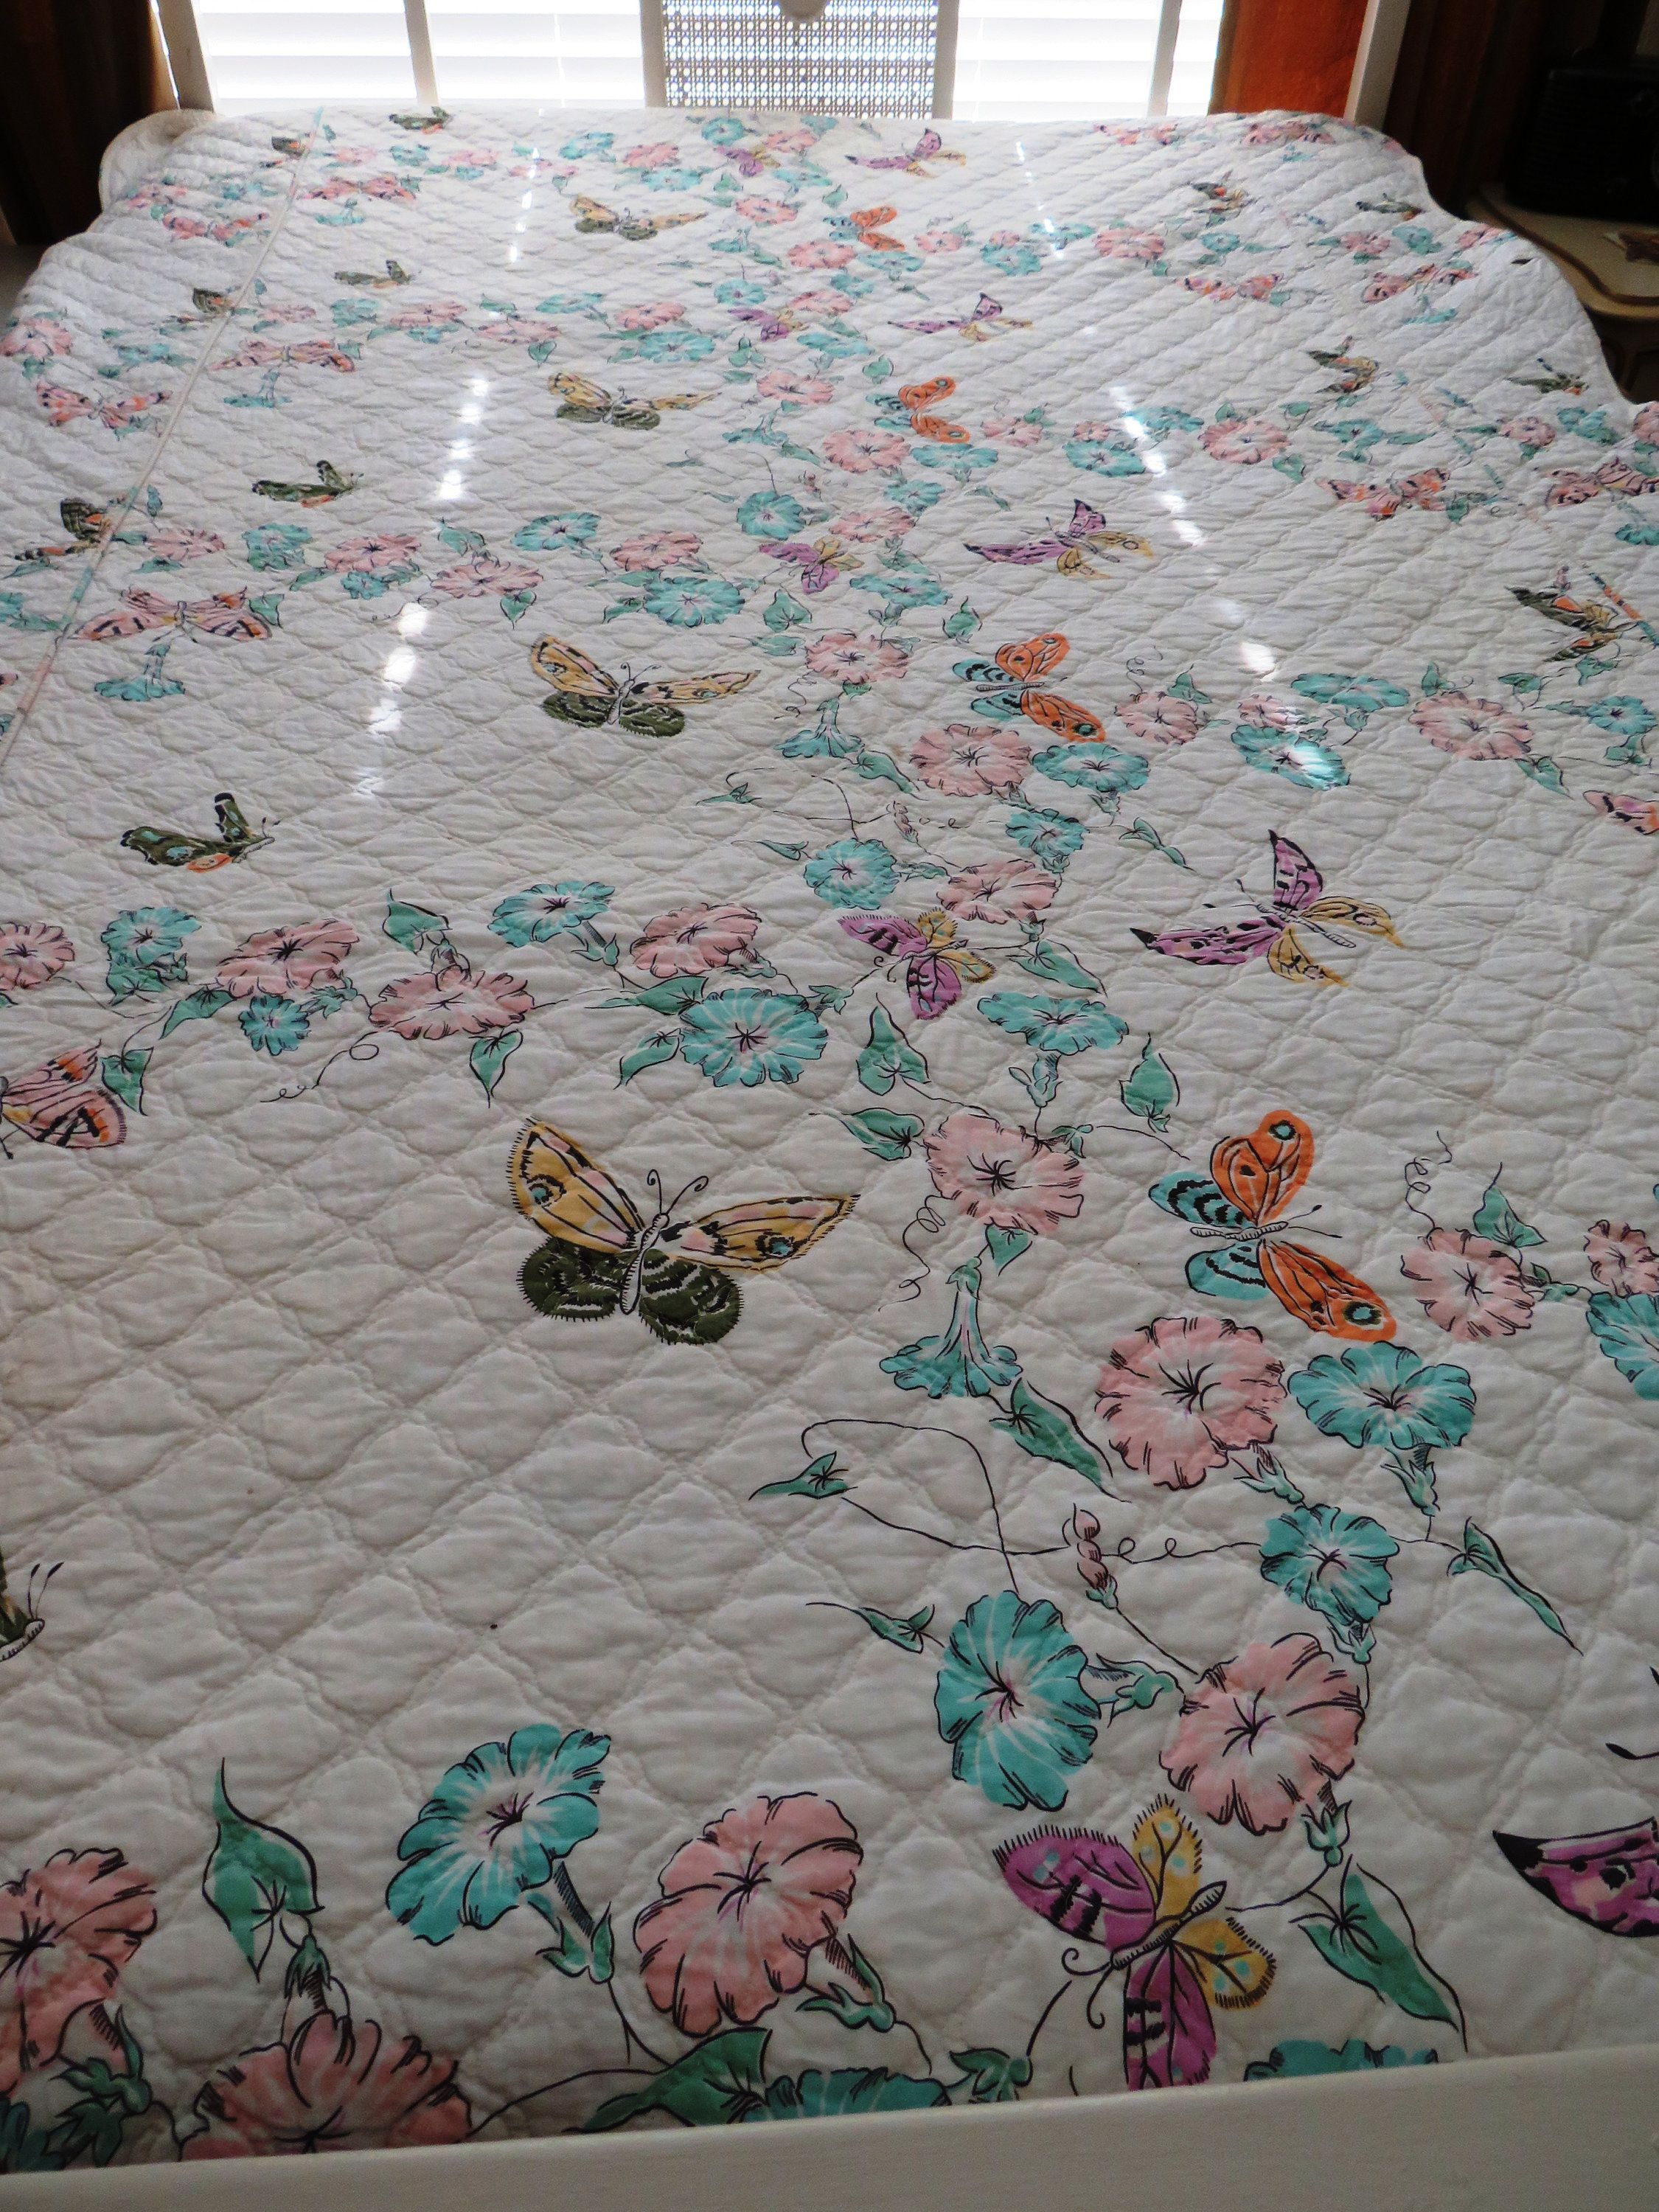 1970s Twin Quilted Coverlet Bedspread Pink Blue Morning Glories And Butterflies Summer Bedding Shabby Chic Vintage Twin Bed Quilt In 2020 Quilted Coverlet Twin Quilt Quilt Bedding